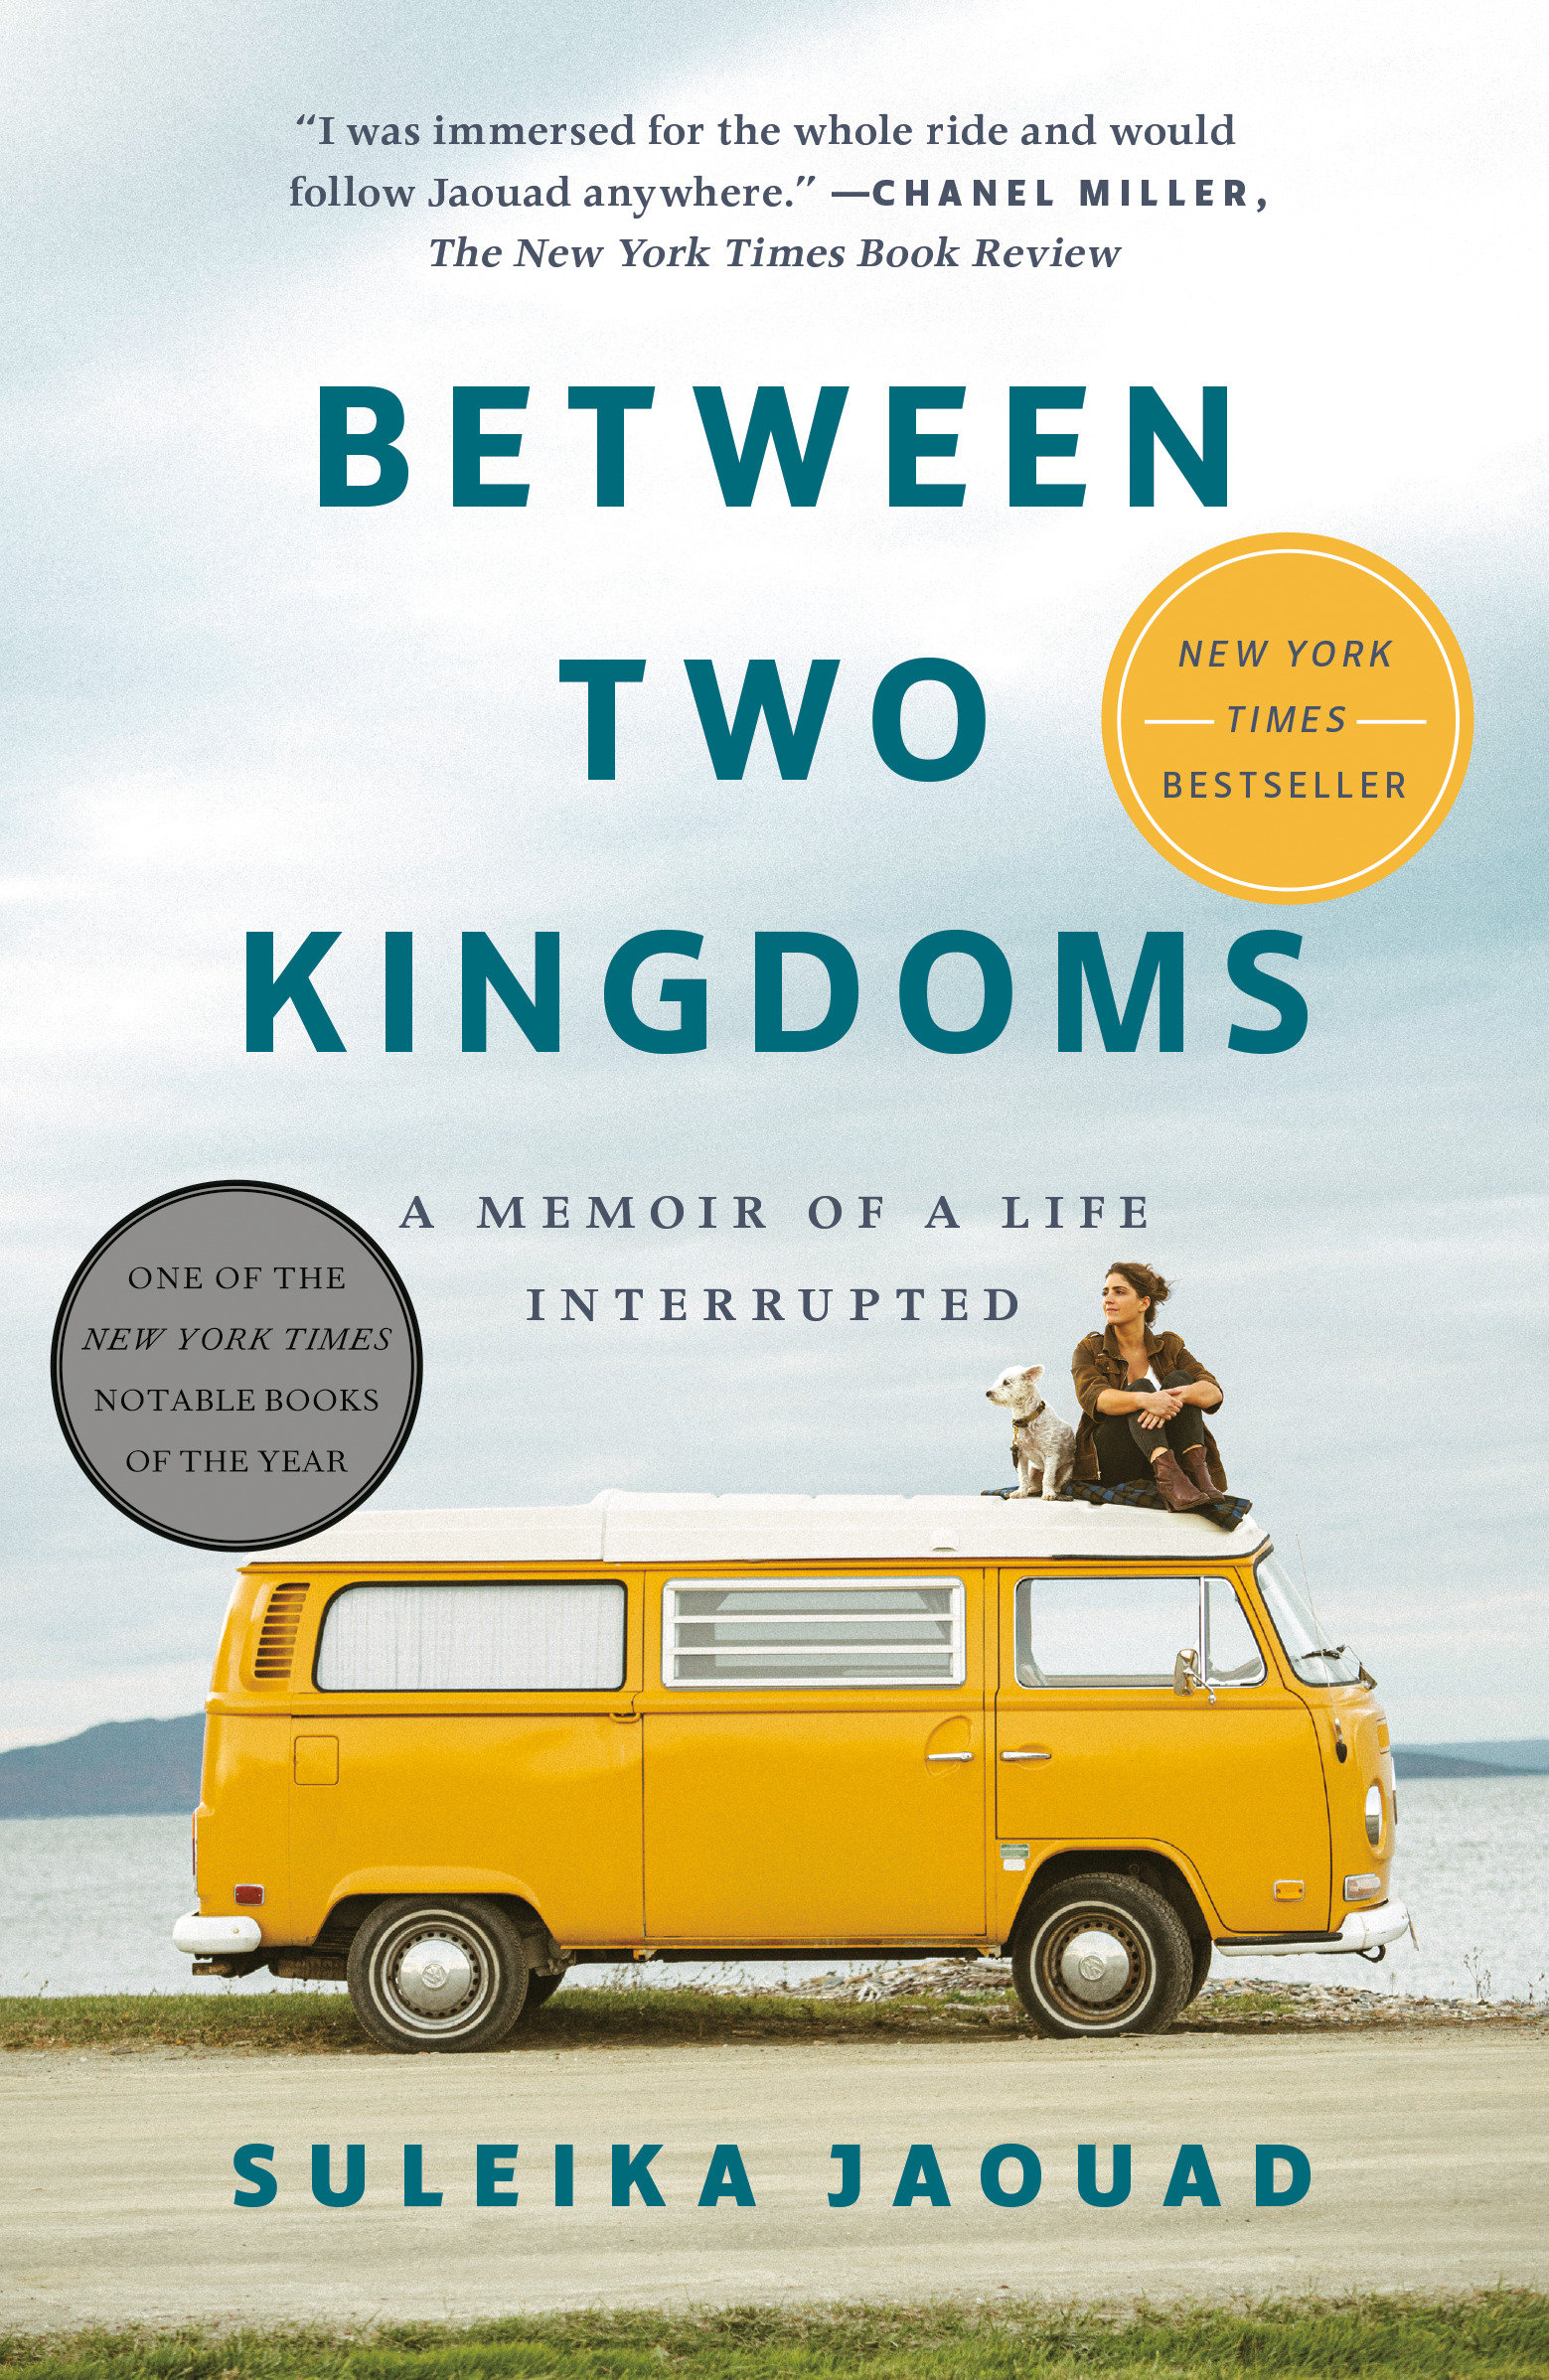 Between Two Kingdoms A Memoir of a Life Interrupted